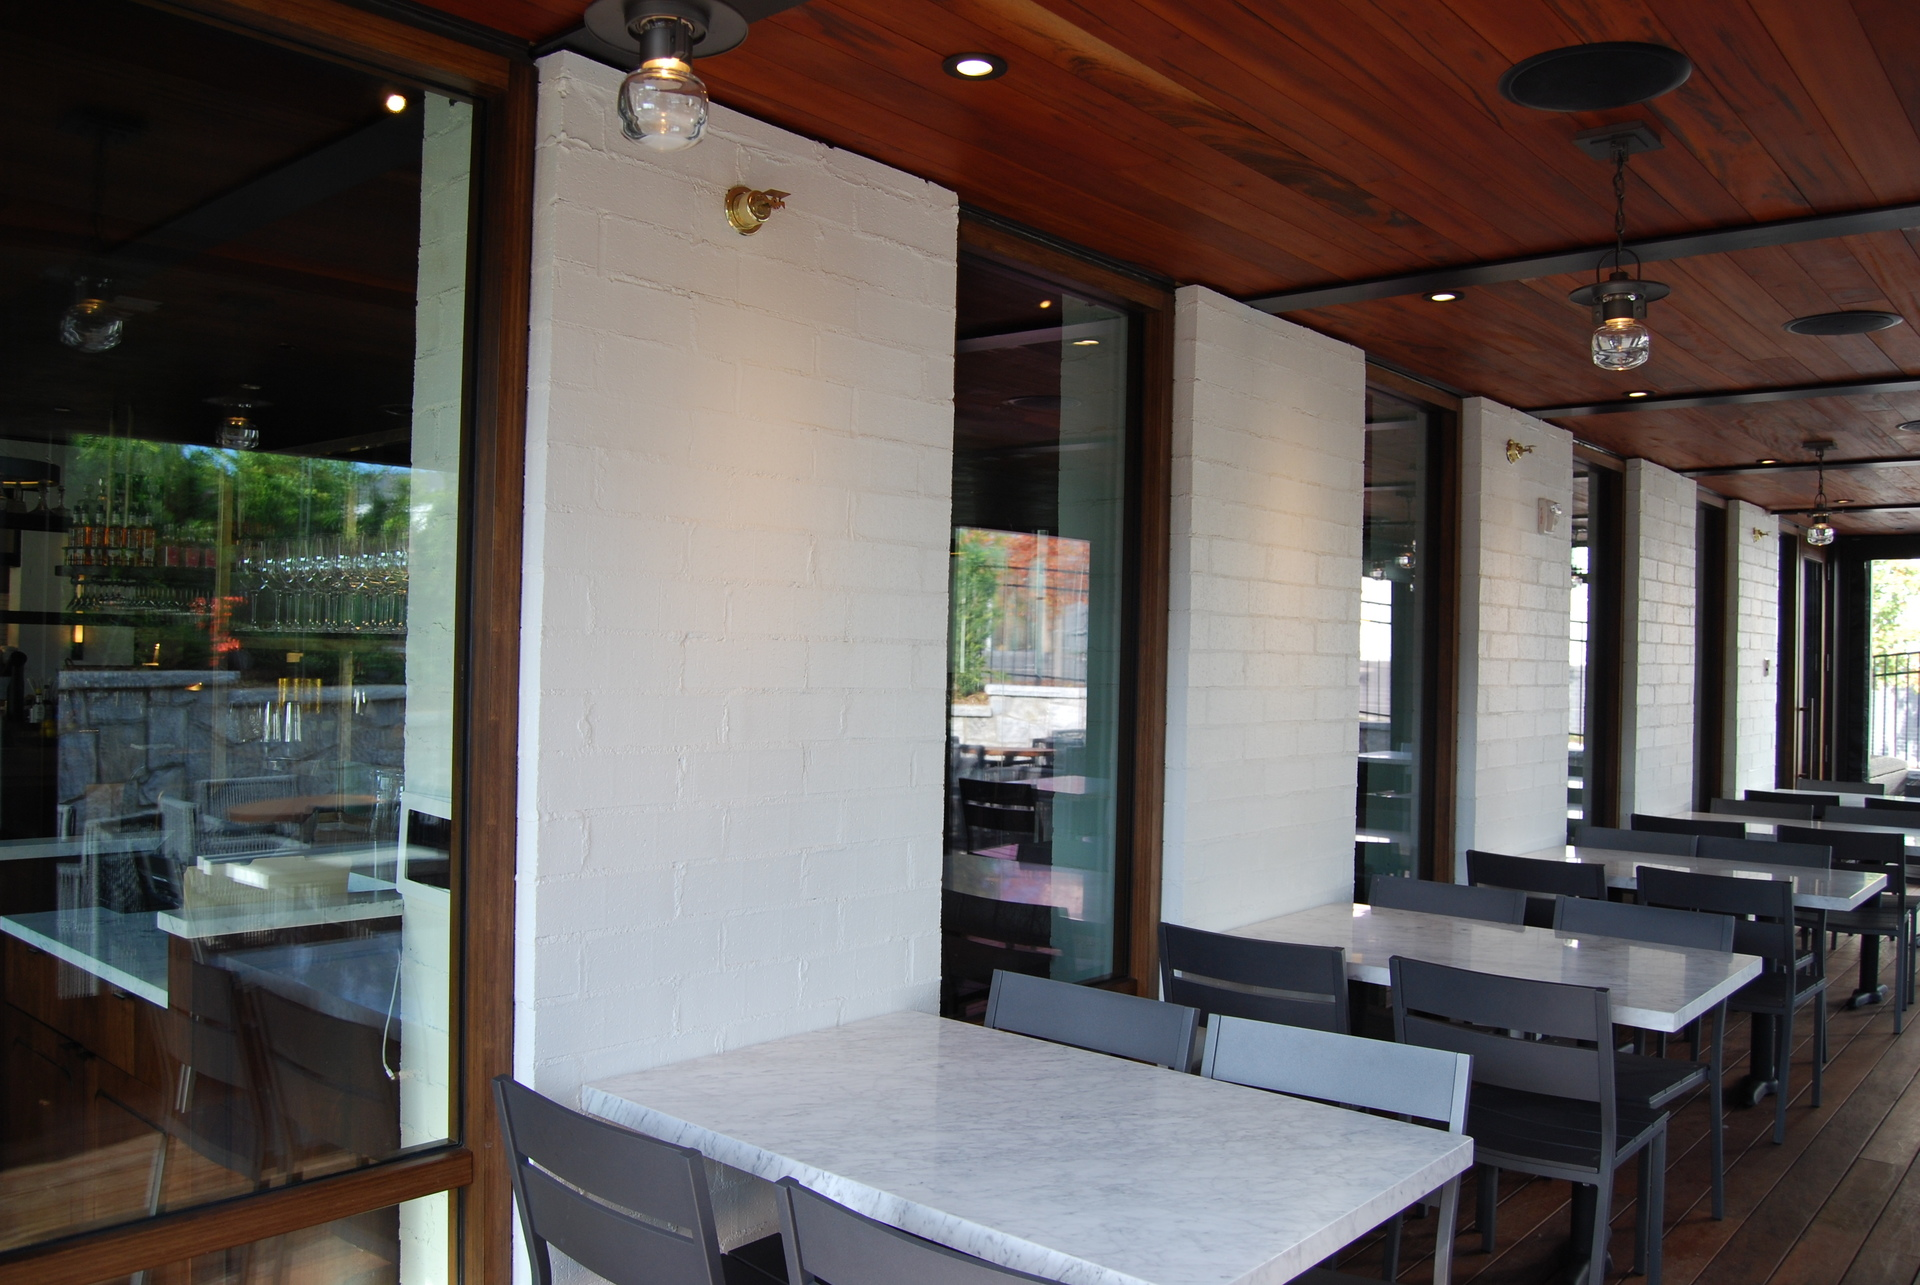 Ecco Restaurant, located in Atlanta, Georgia, integrated Lamboo® Vue™ as well as Lamboo® Glazing™ products throughout their final design.